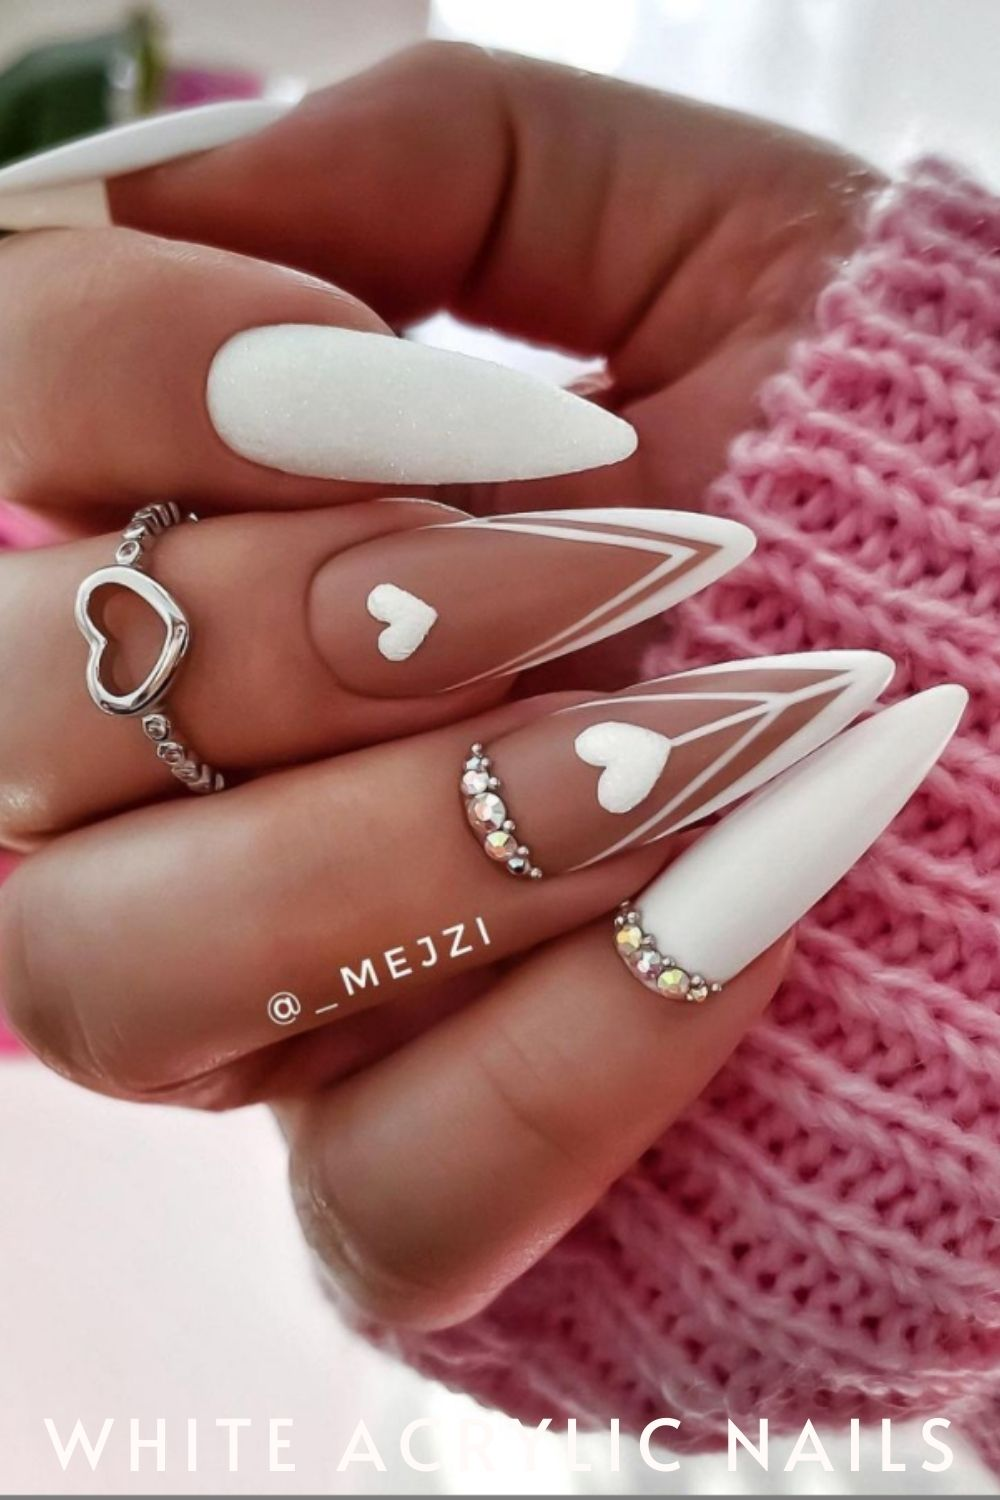 white almond nails are